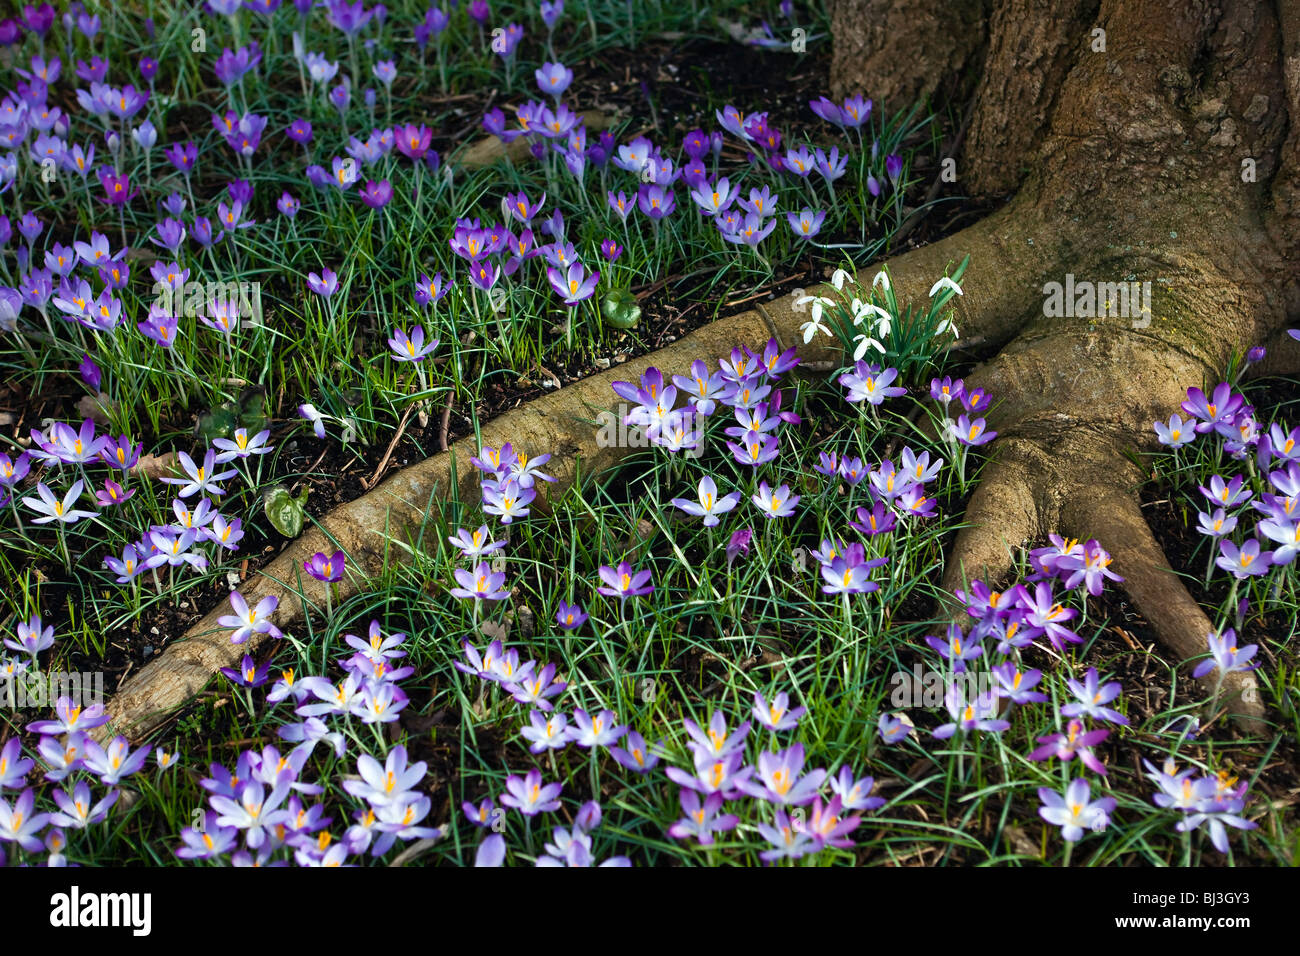 Crocus flowers and snowdrops around a tree root in Kew gardens - Stock Image